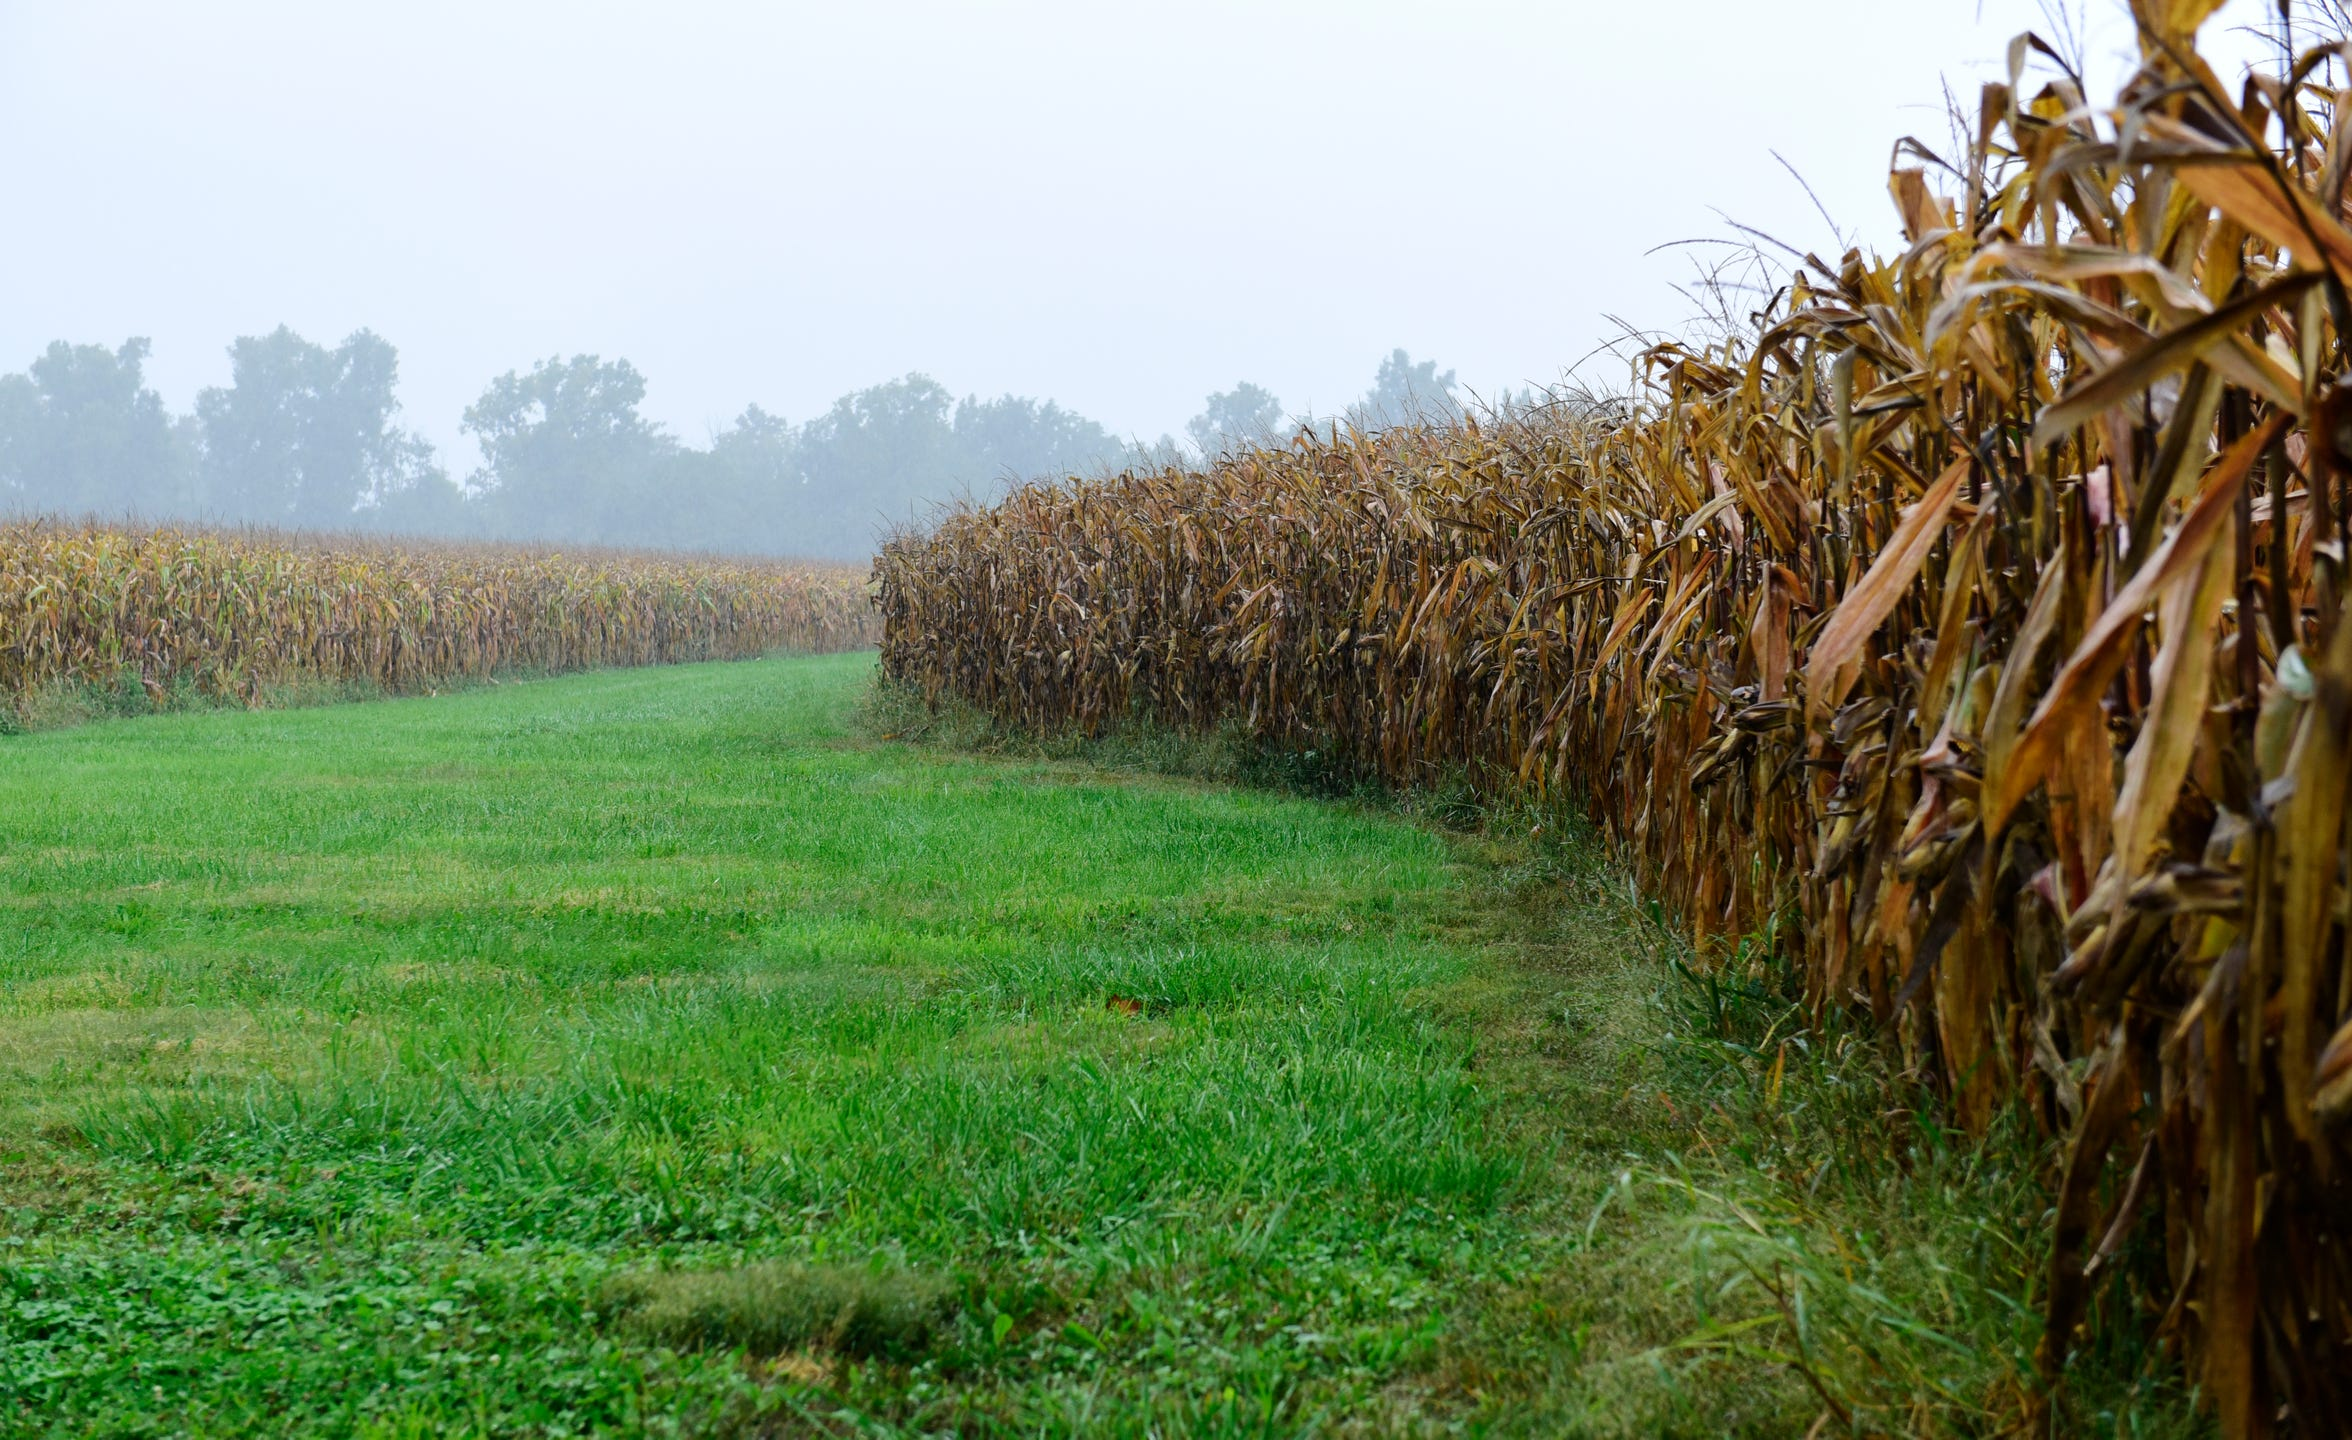 The U.S. Department of Agriculture's estimated bottom line loss for farmers in 2018 comes to an average of $1,600.